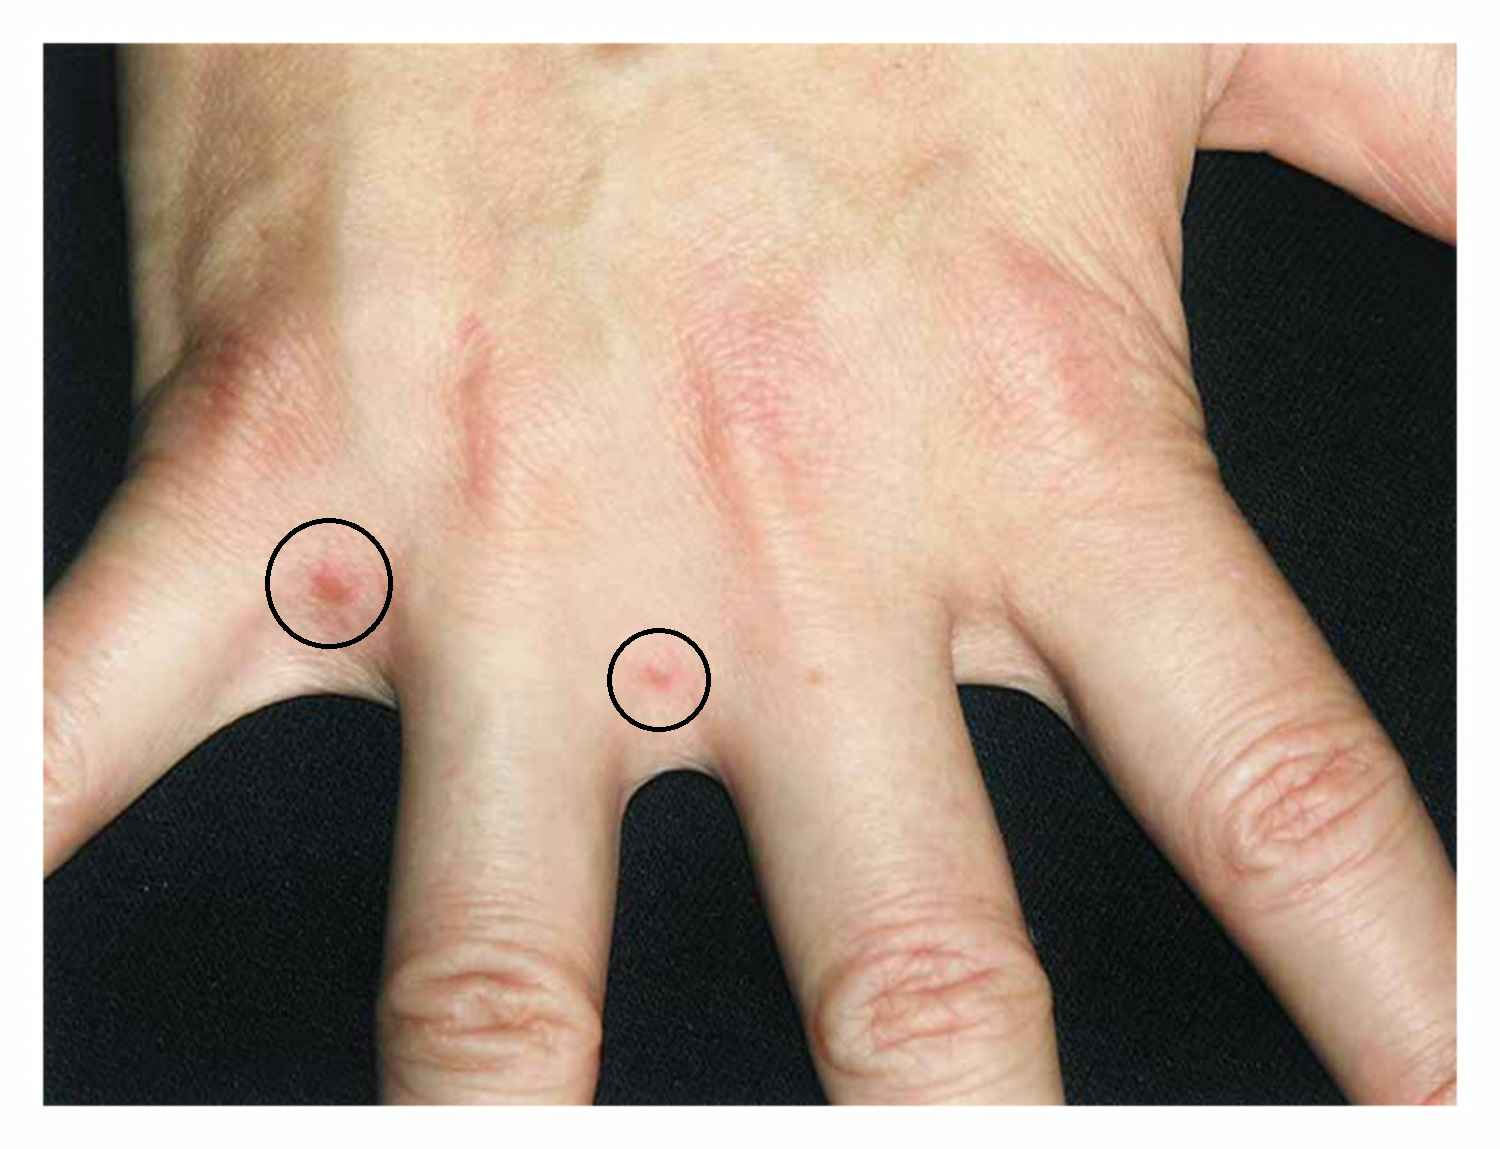 Pruritus and Papular Lesions Between Fingers, Axillae, Groin, and Buttocks